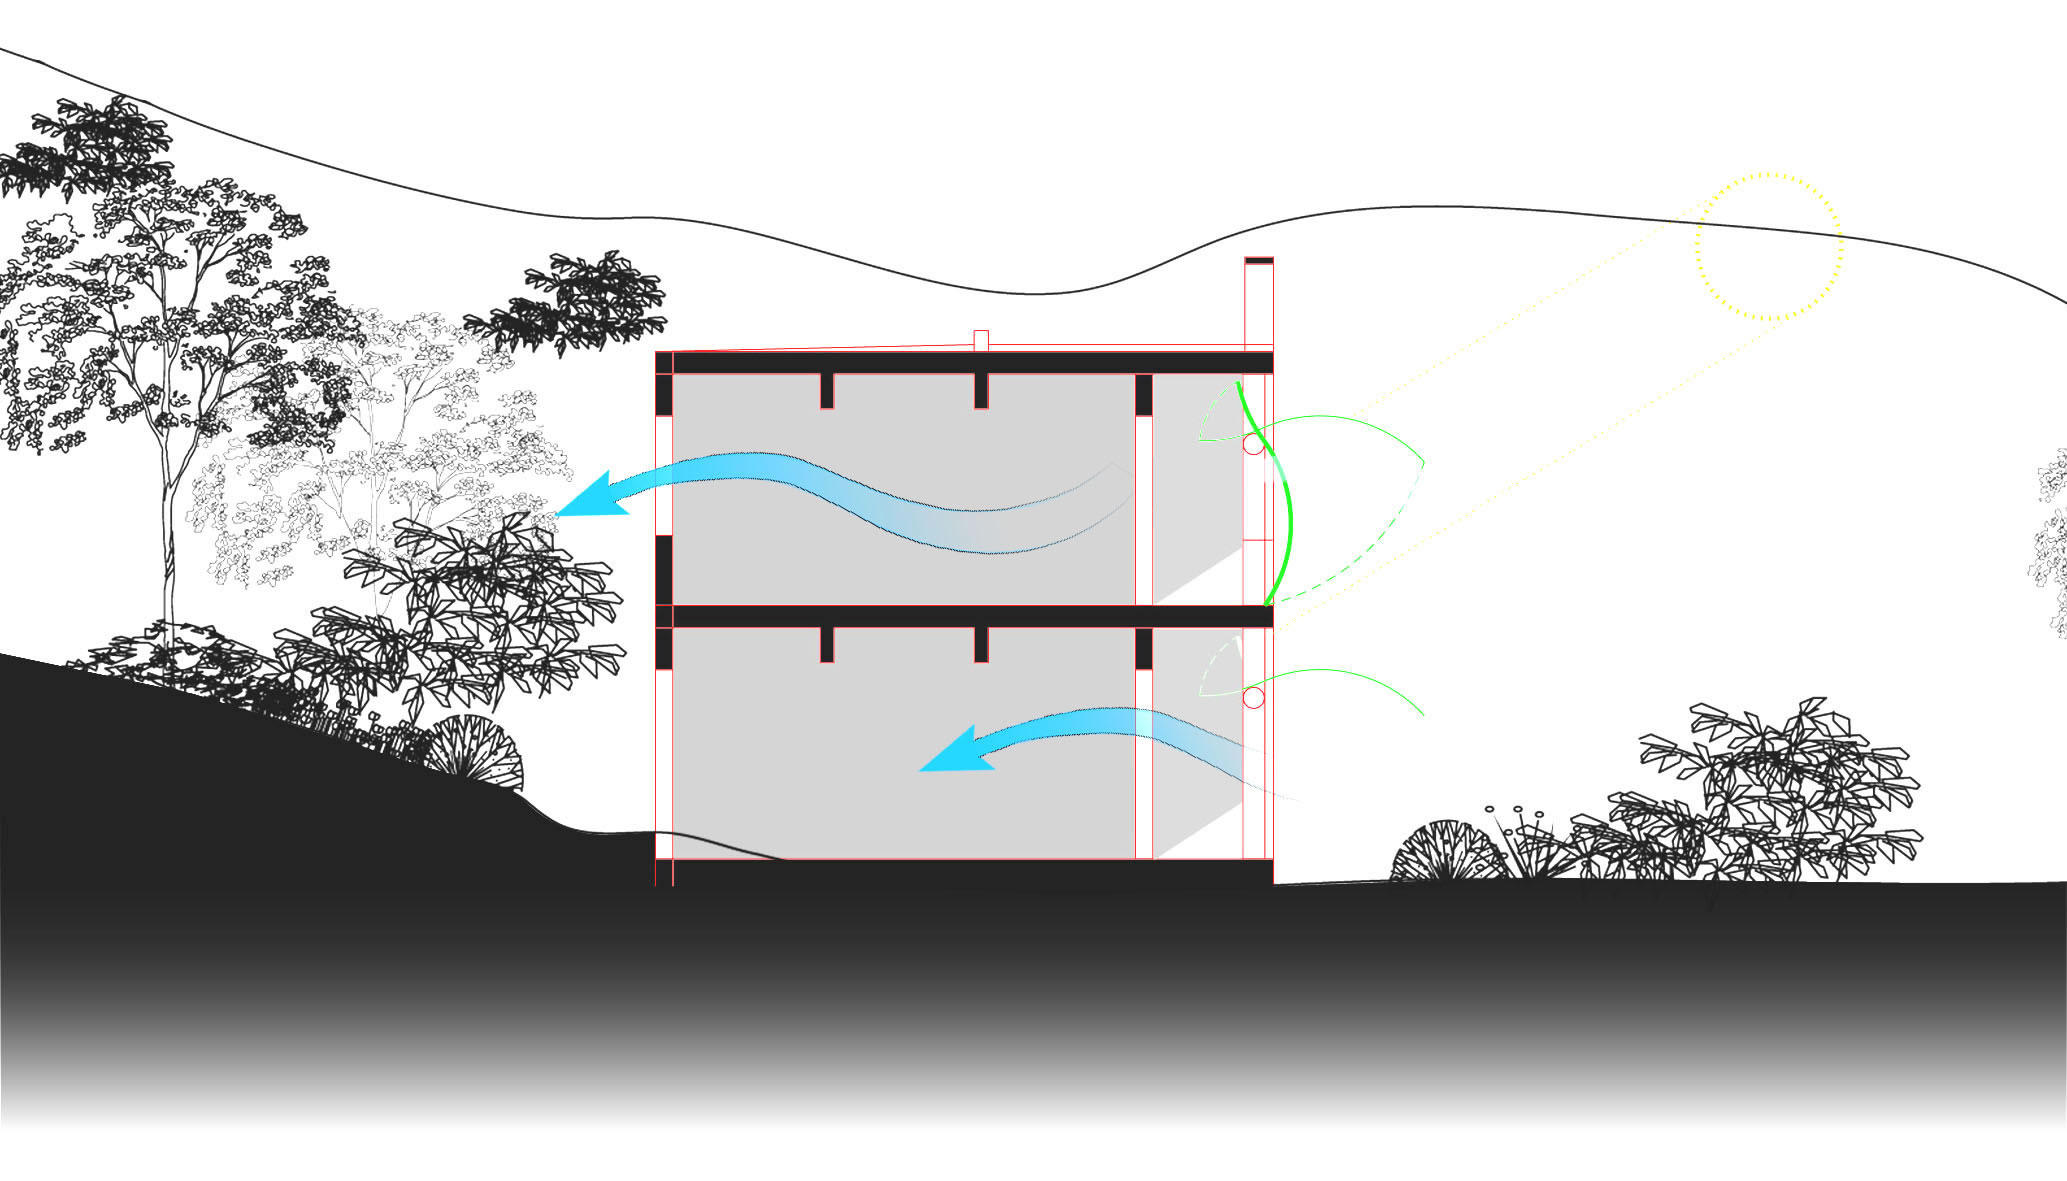 """(From left to right) Main perspective and section of """"Hainan Forest Reserve Visitor Centre - Adaptive Reuse Proposal of the Abandoned Army Camp"""""""